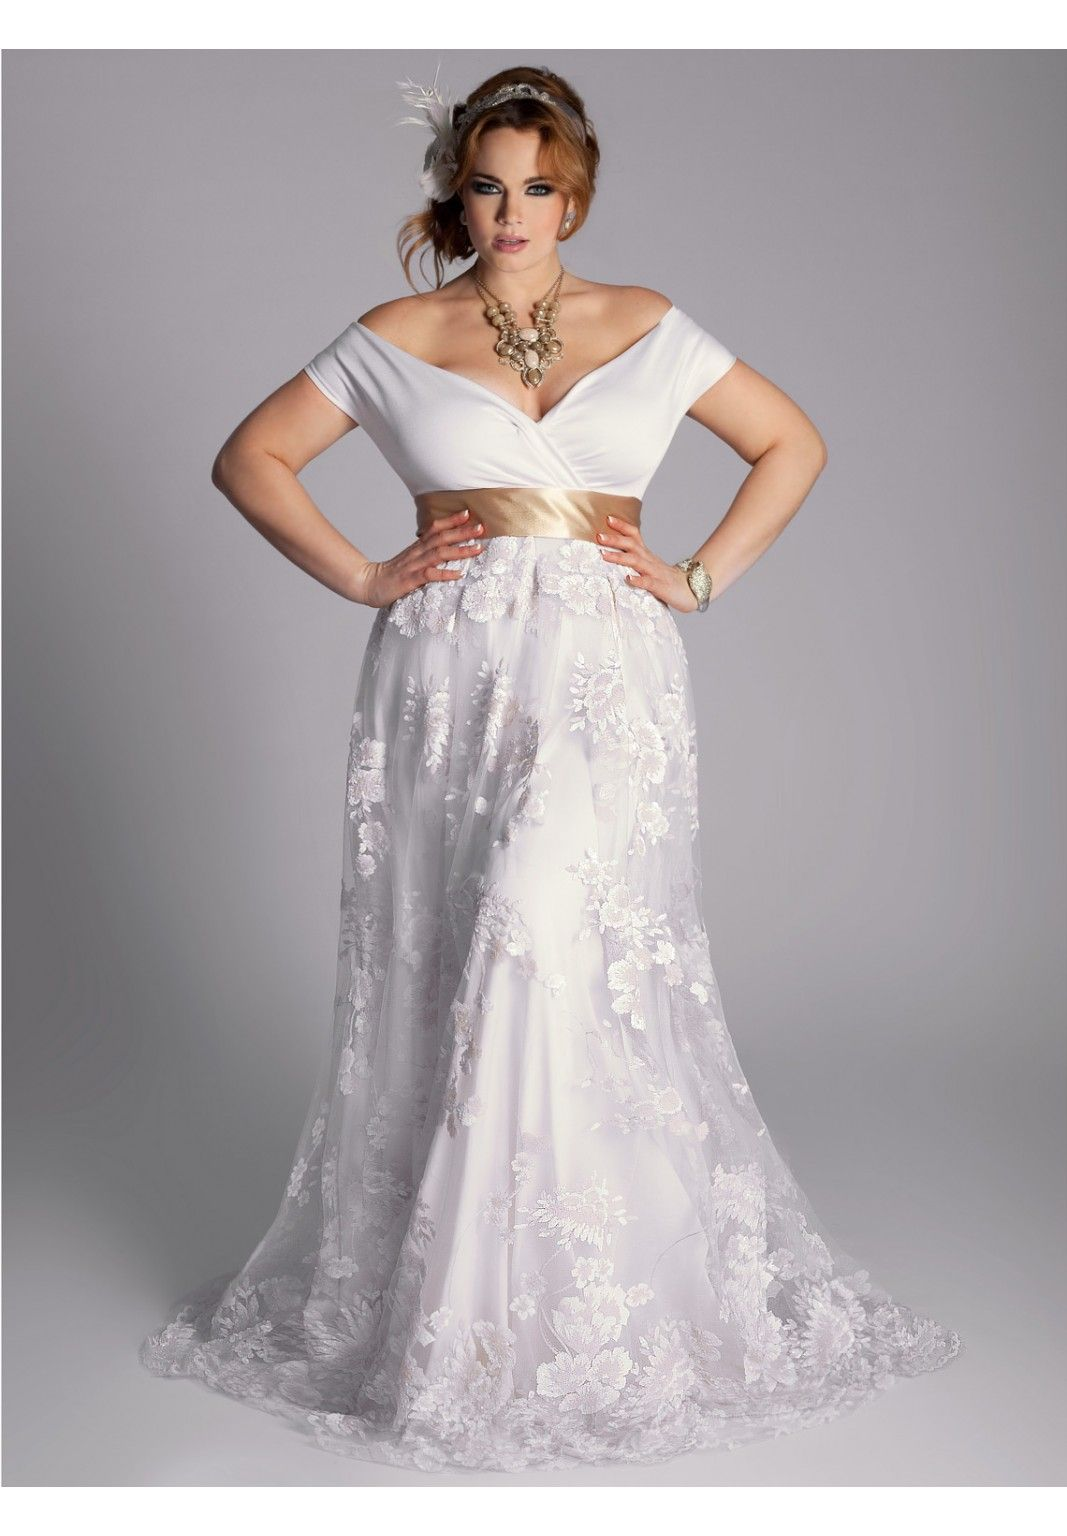 Plus Size Eugenia Vintage Wedding Gown Plus Size Dresses One